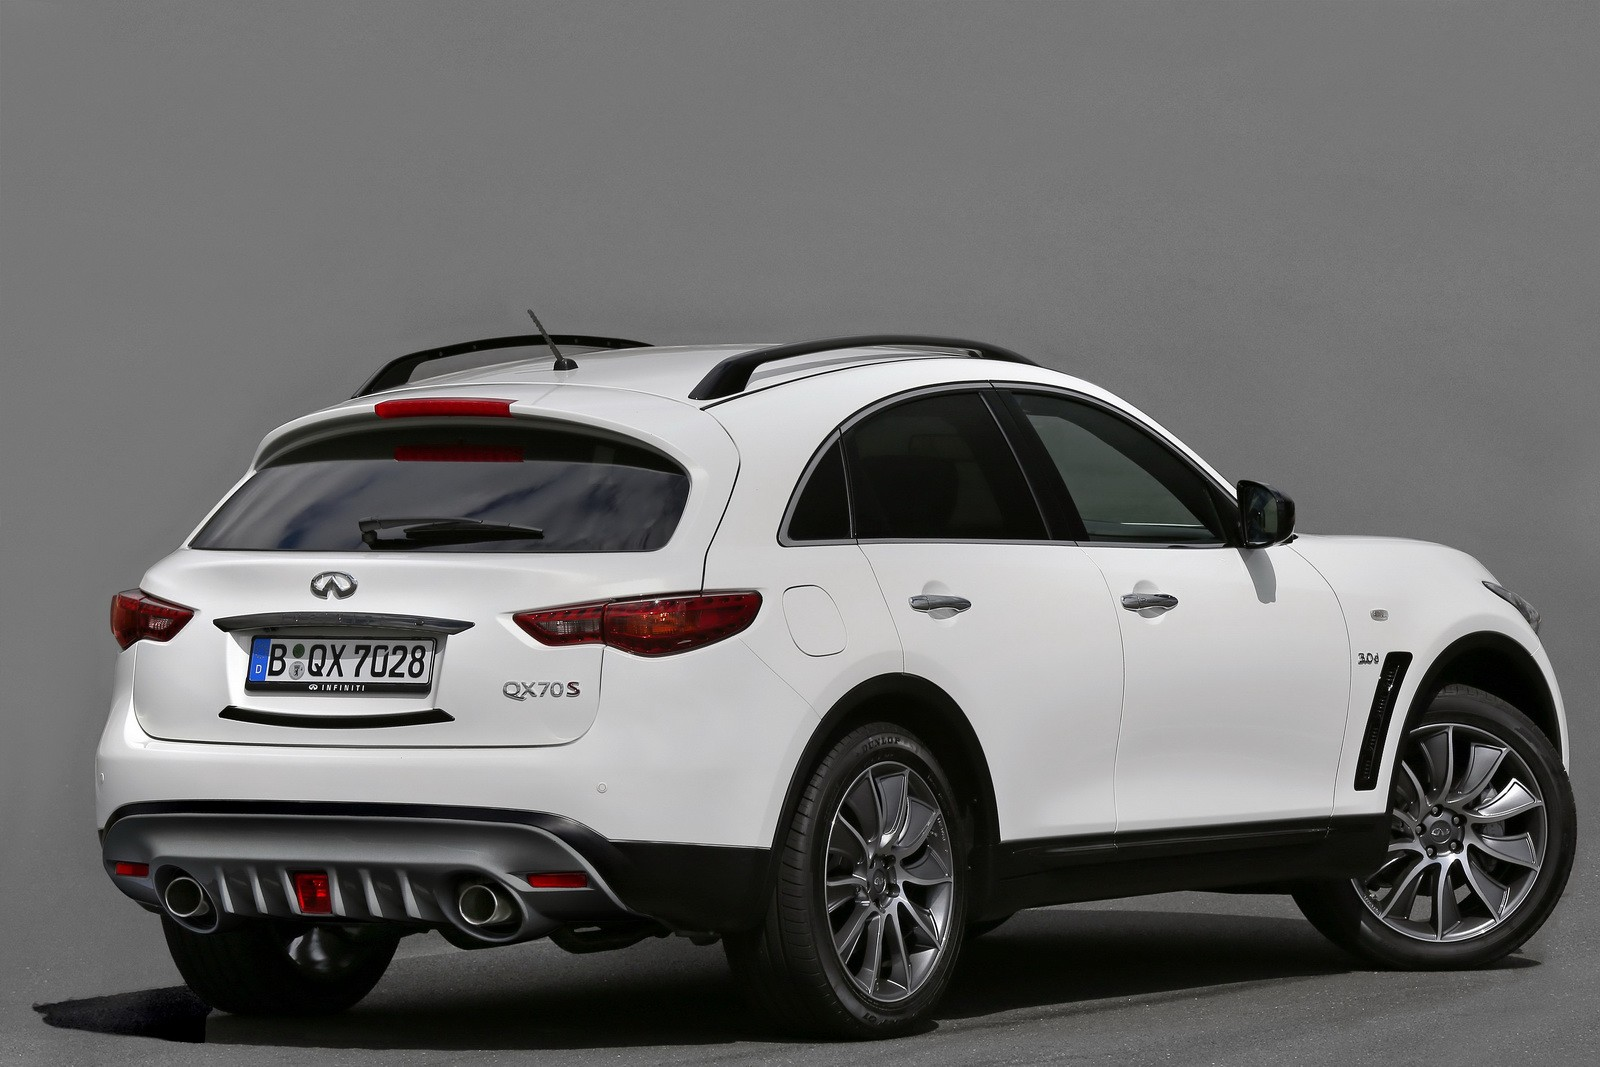 Infiniti Qx70 Ultimate Edition Revealed Ahead Of Frankfurt